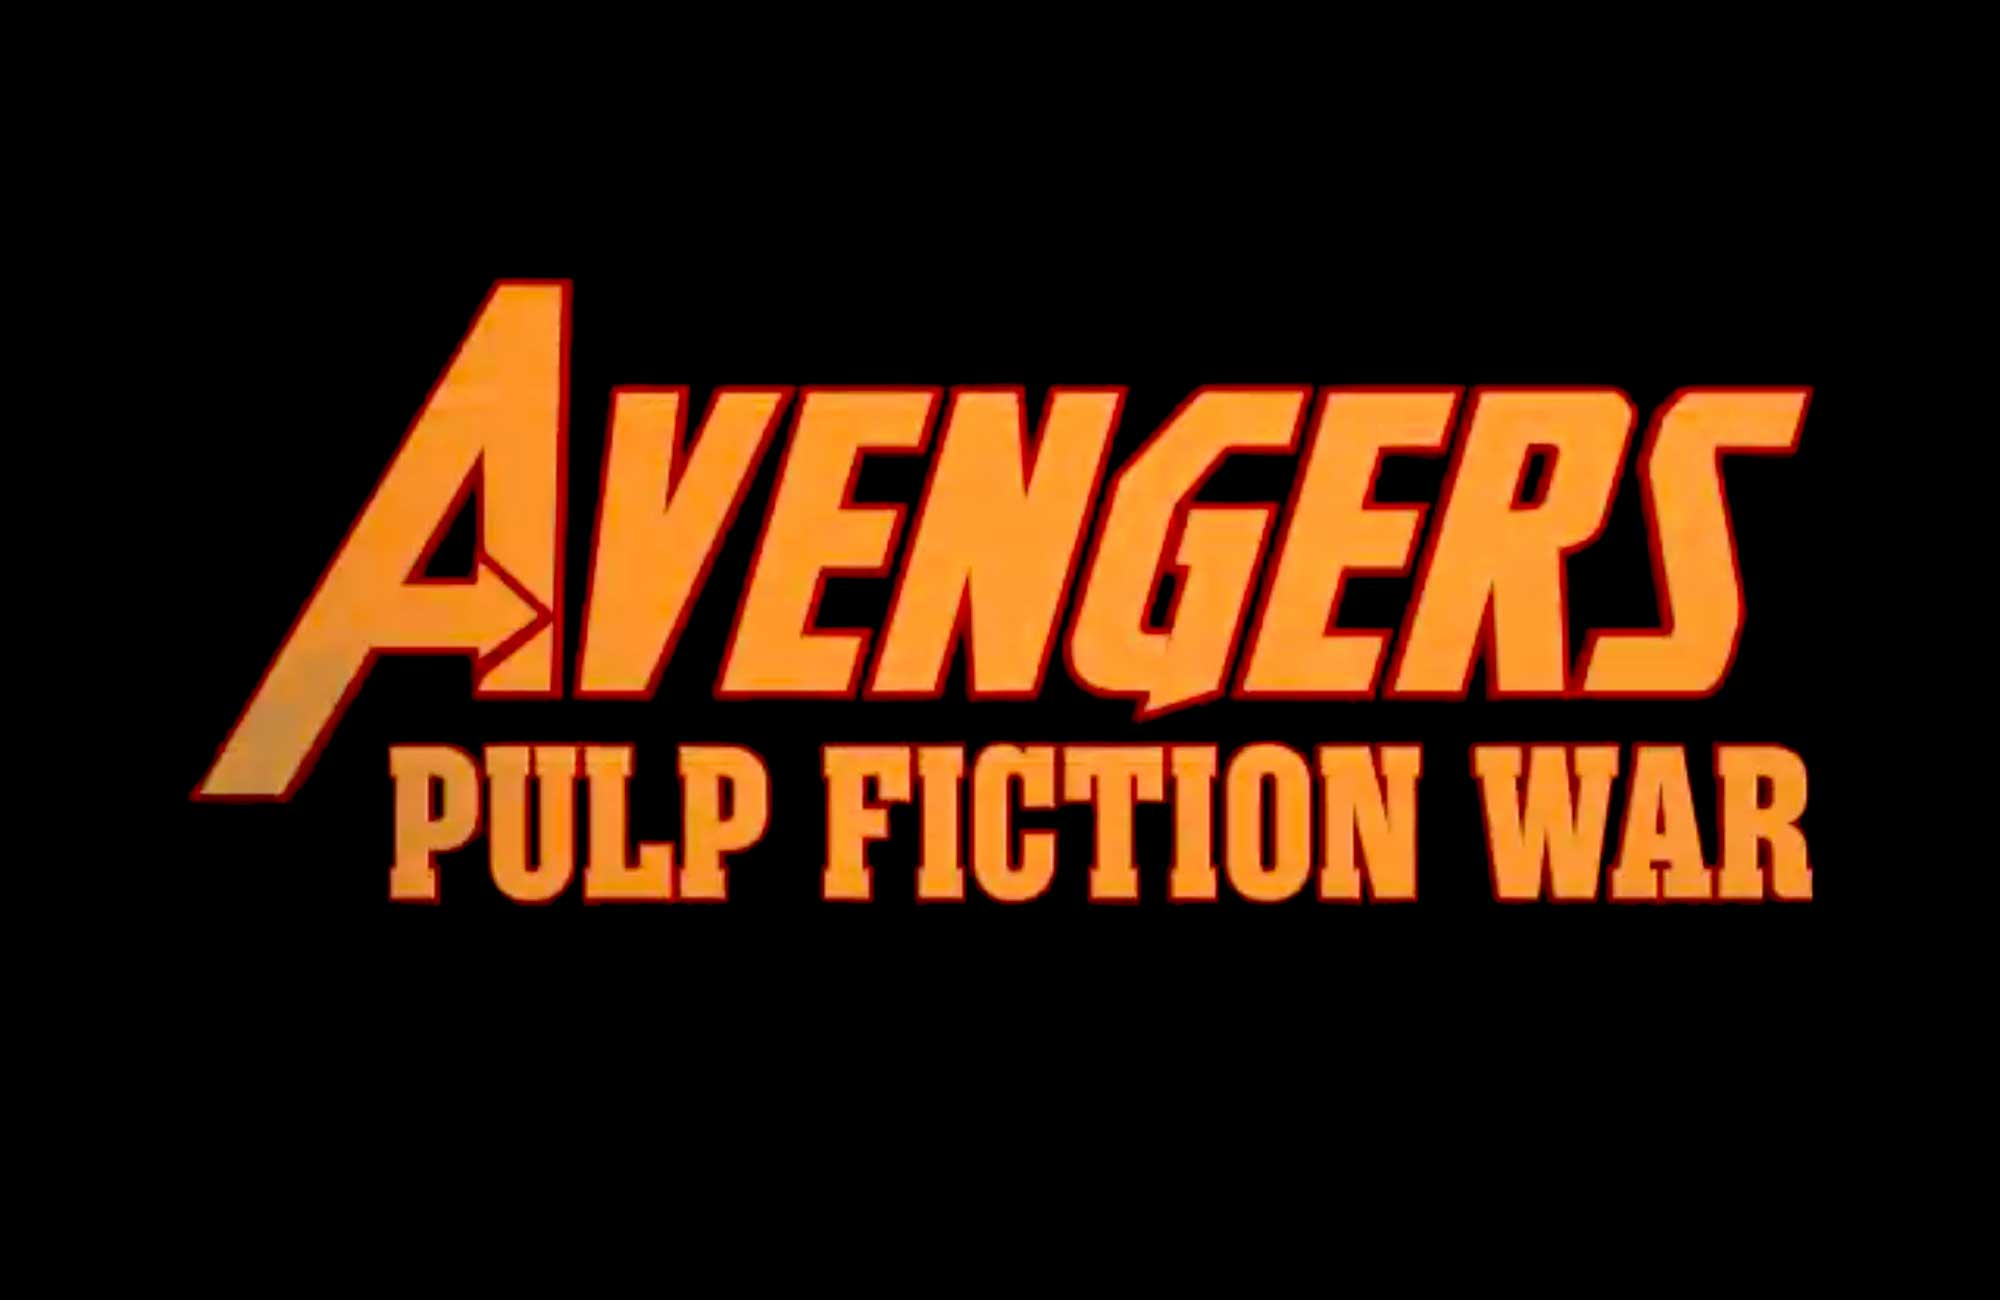 Avengers: Pulp Fiction War